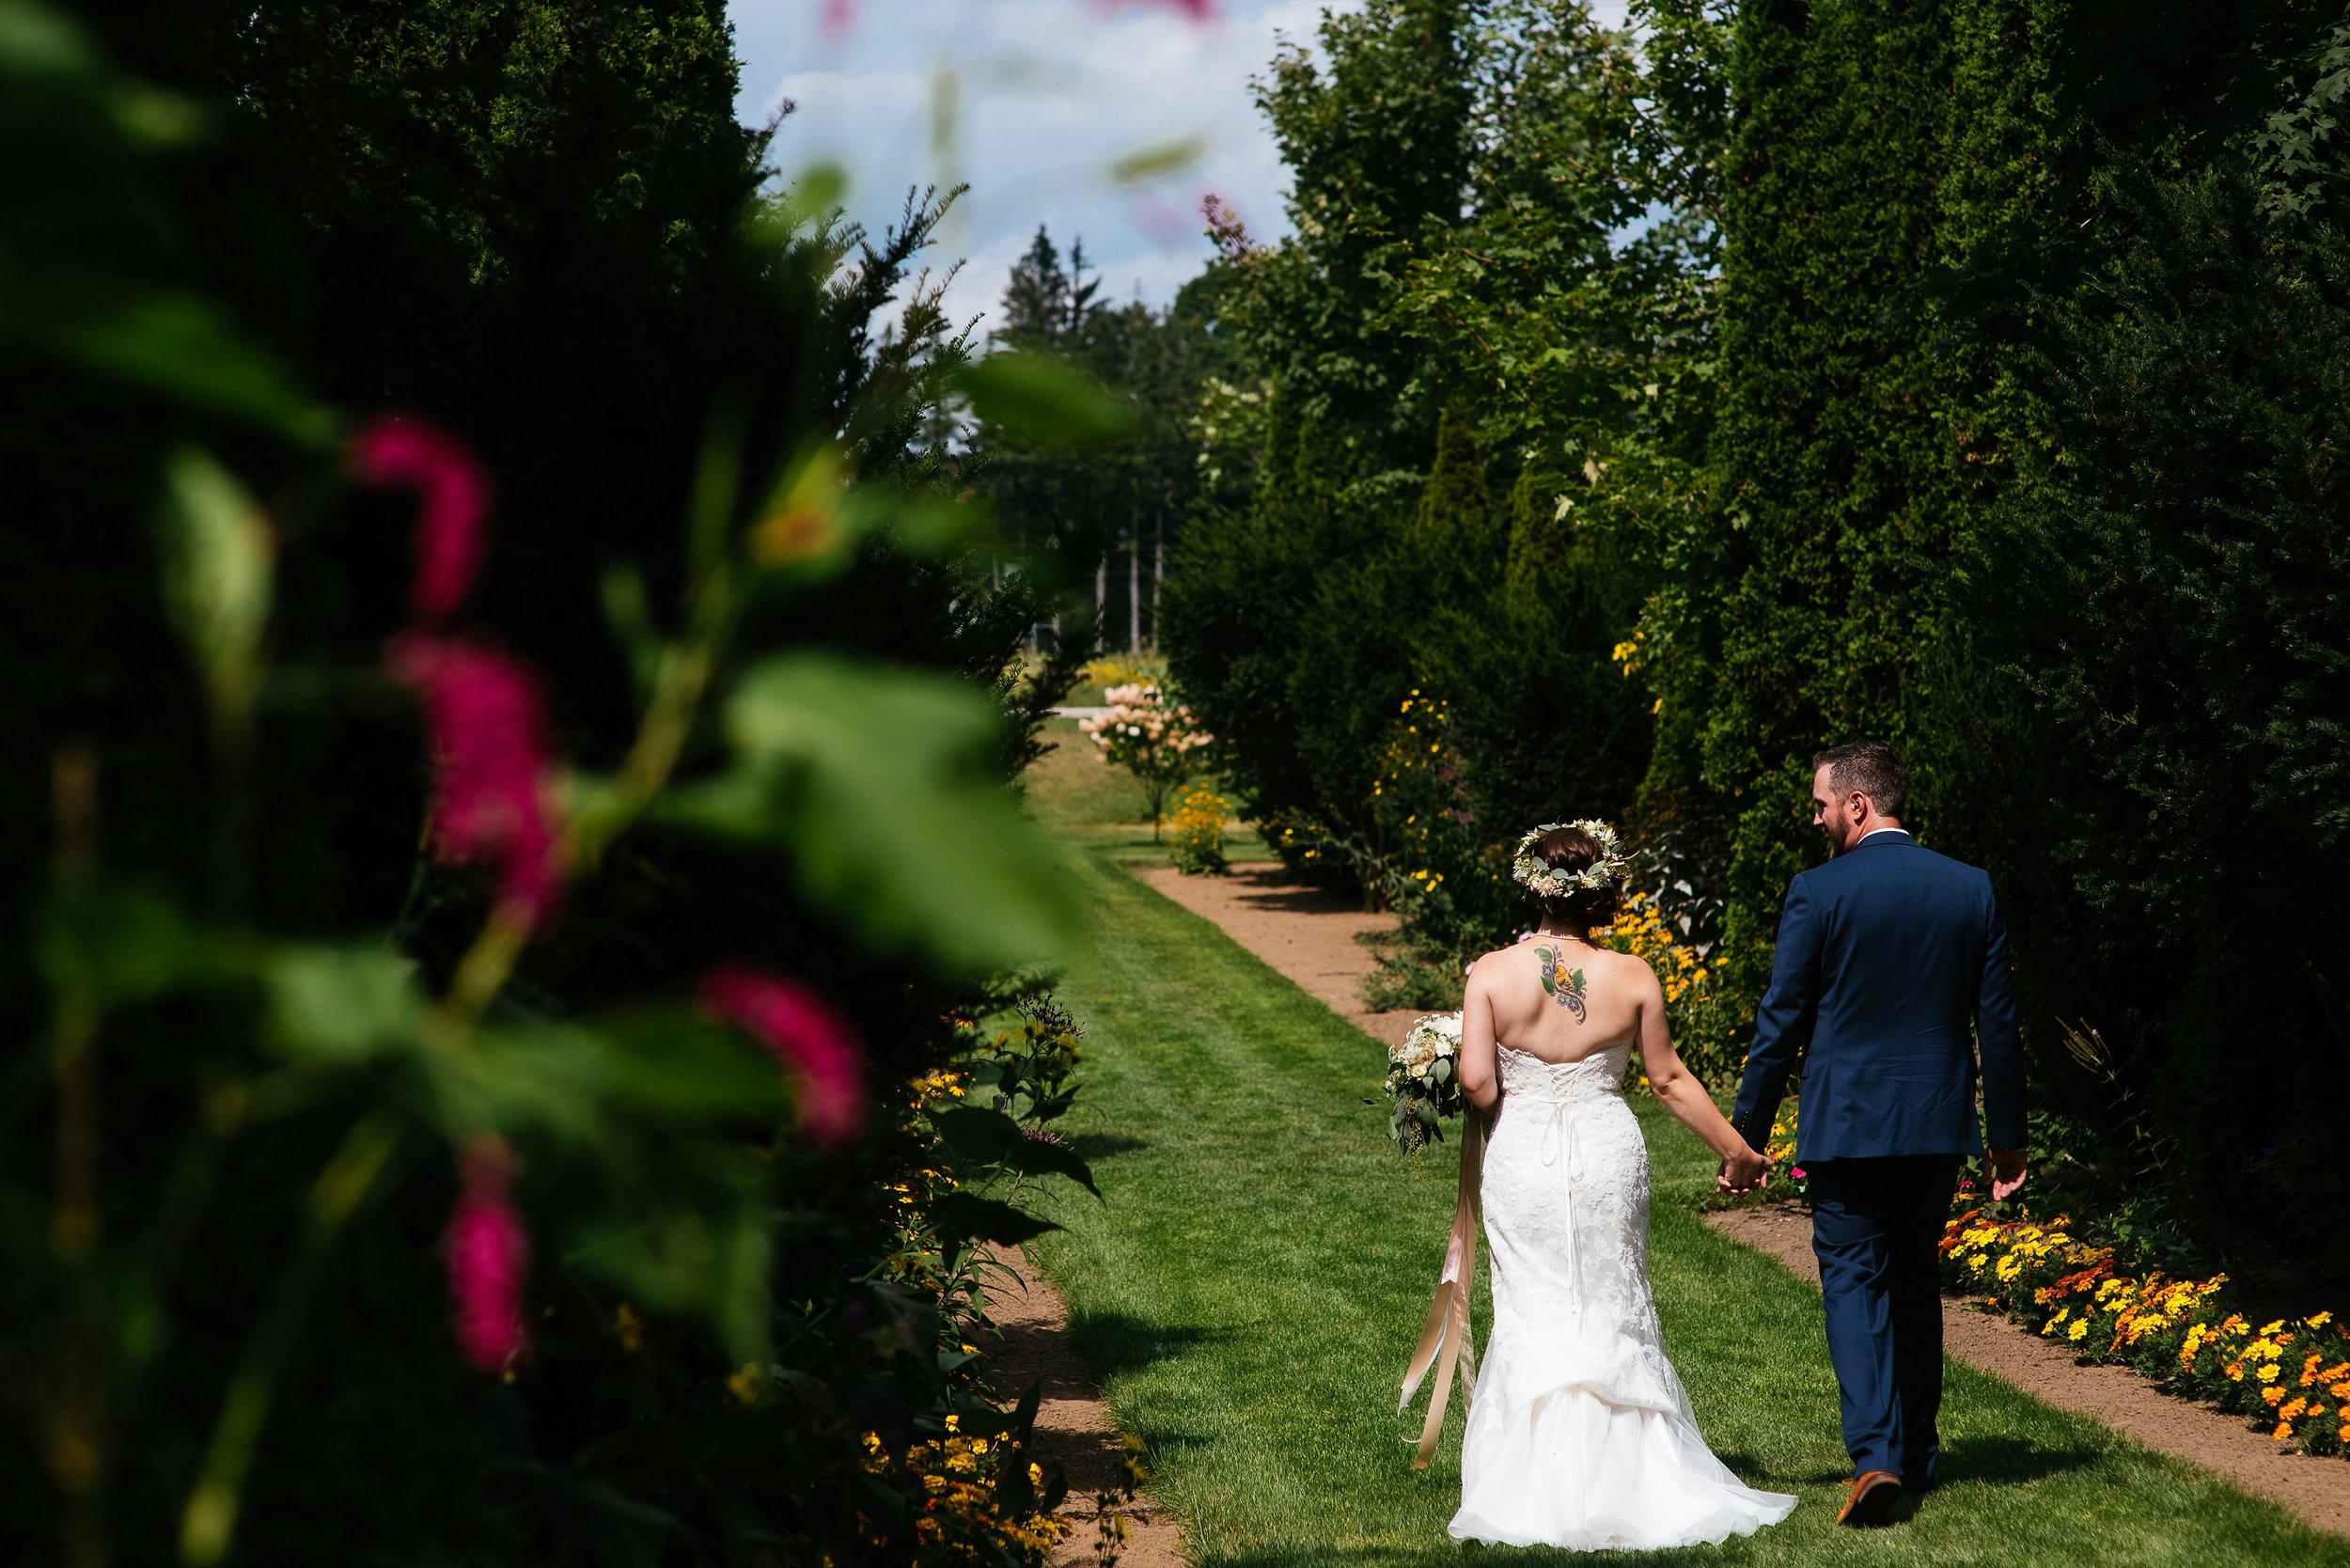 WEDDINGS - Cranberry Creek Gardens is the perfect rural setting for your wedding ceremony and reception in picturesque Lynedoch, Ontario. Our historic church, rustic barn and lush gardens are just a few of the variety of options we have available to ensure your wedding is exactly what you envision